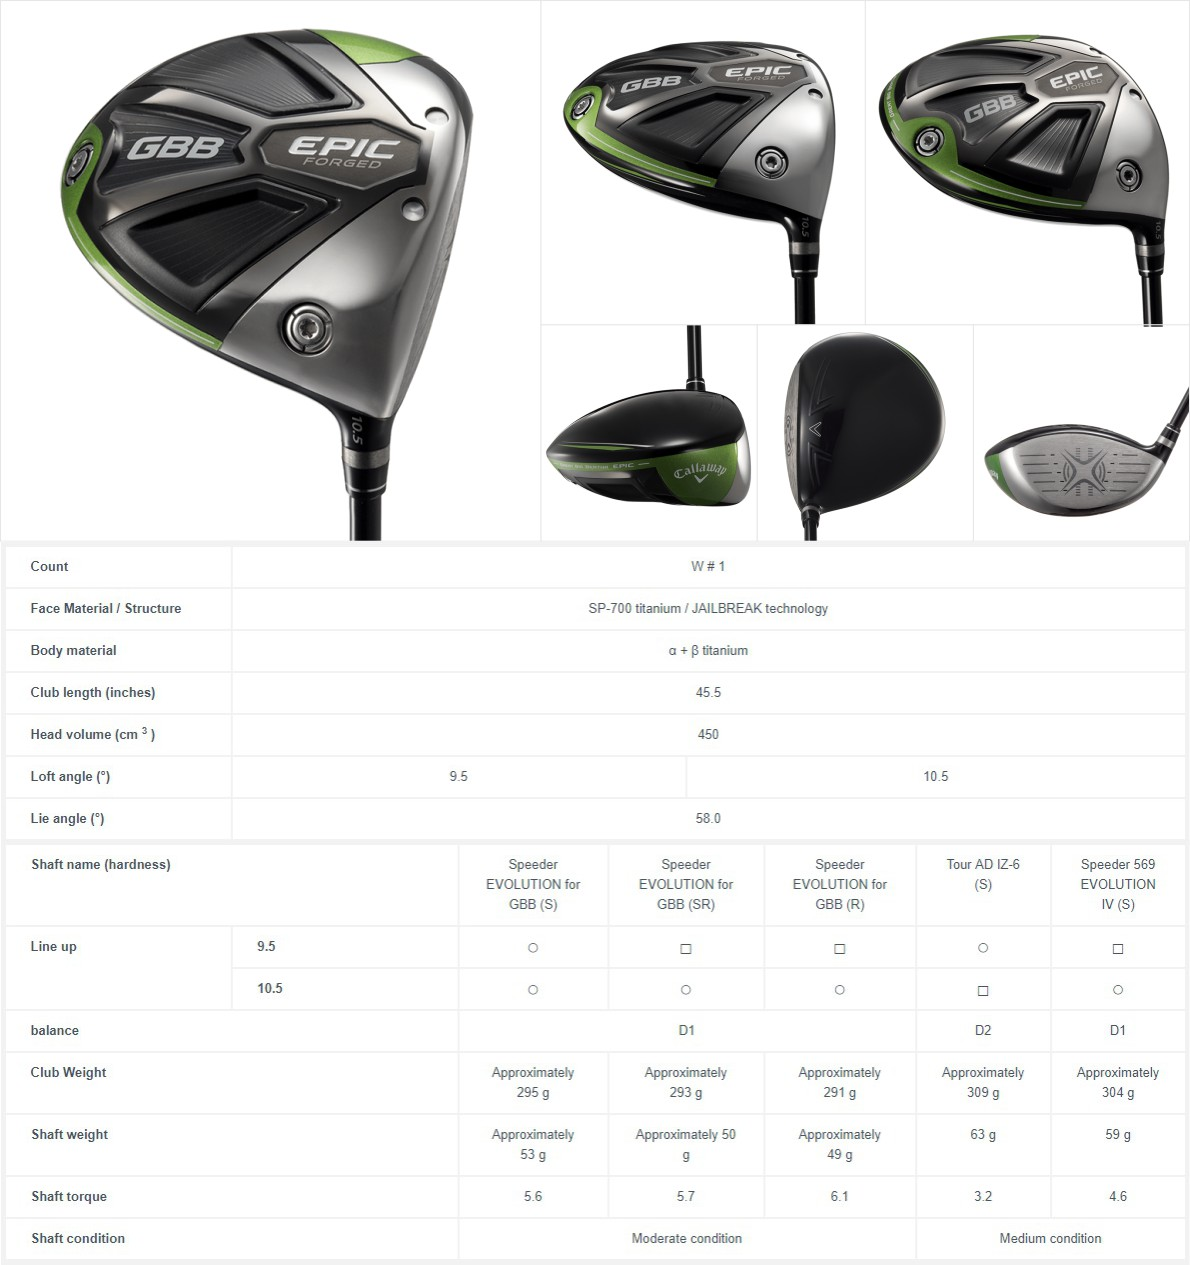 Callaway GBB Epic Forged Driver